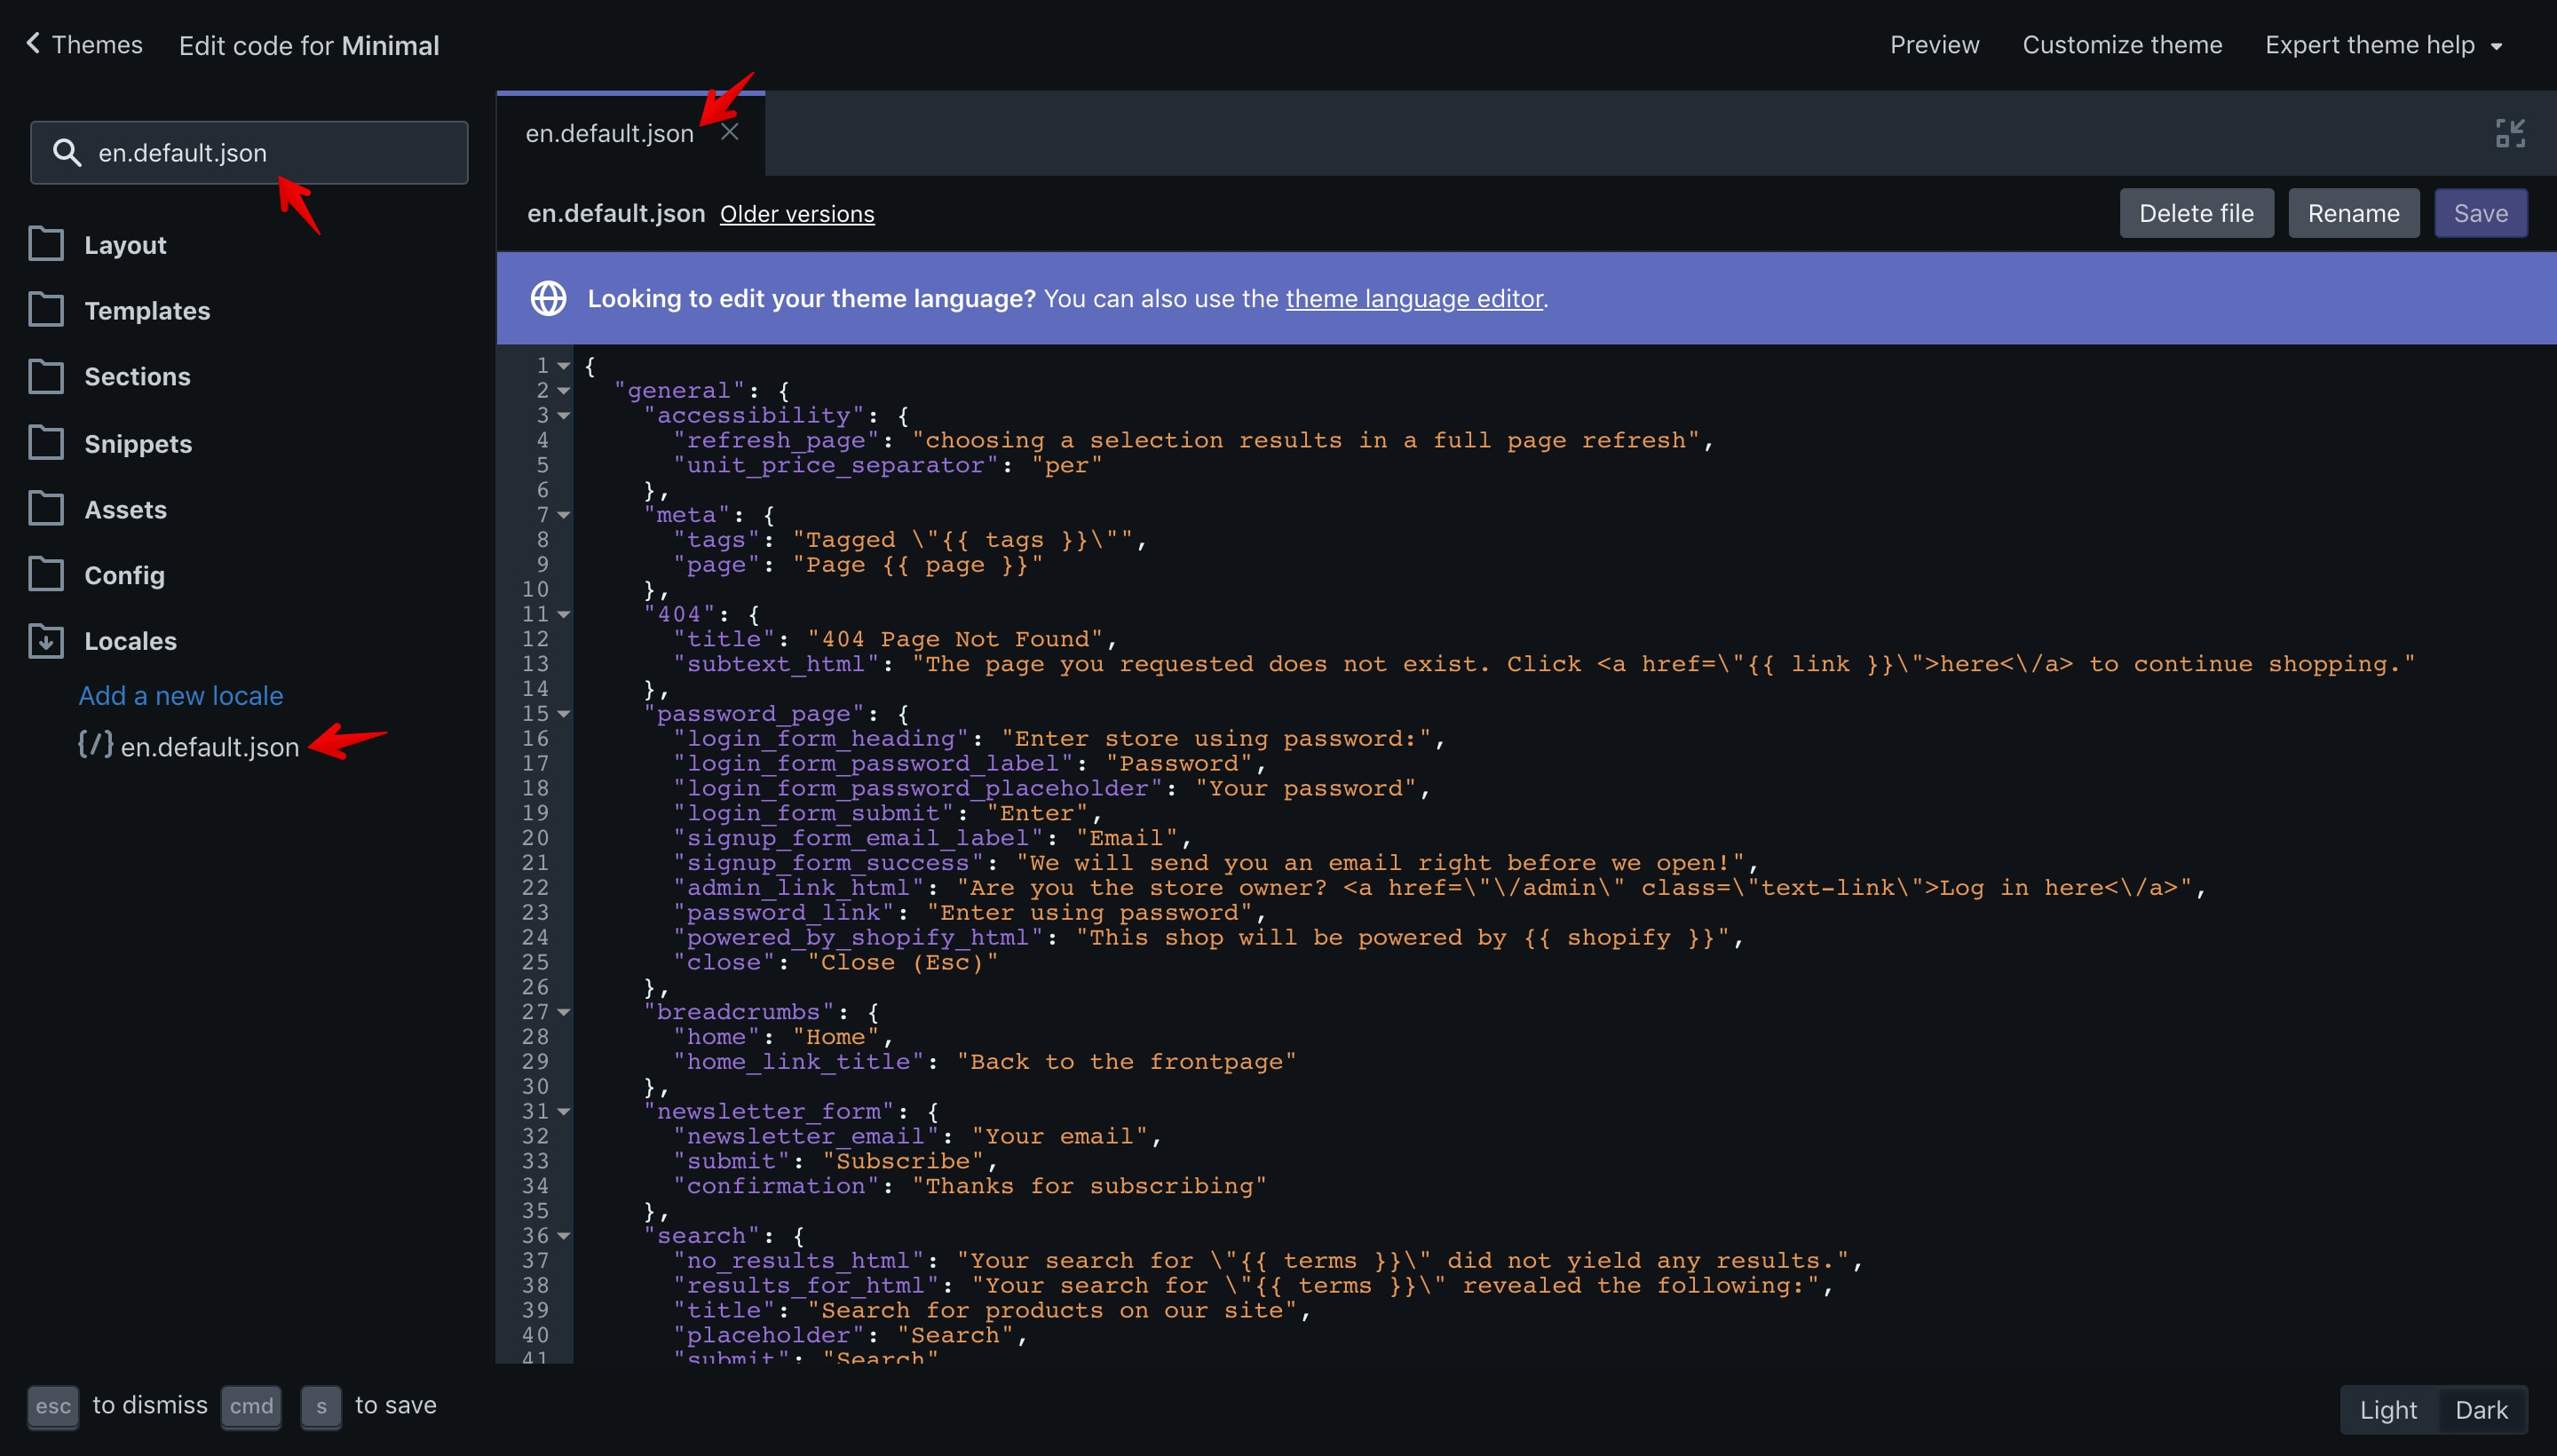 """Minimal theme """"en.default.json"""" file opened in the code editor."""